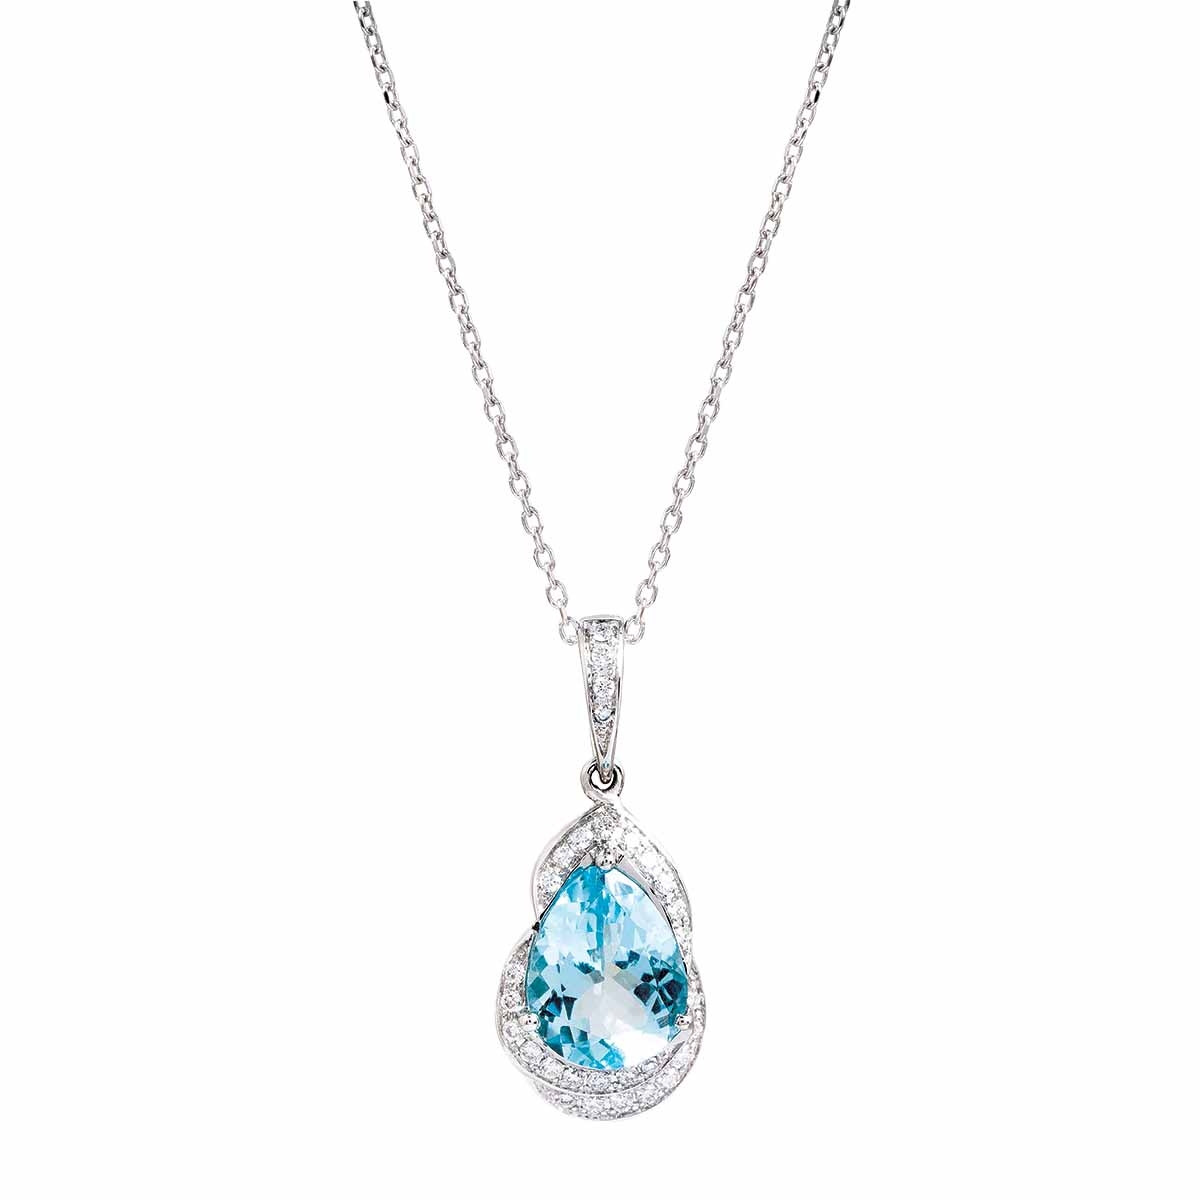 New Asba & Dangler 2.23 CTW Aquamarine & Diamond Halo Necklace